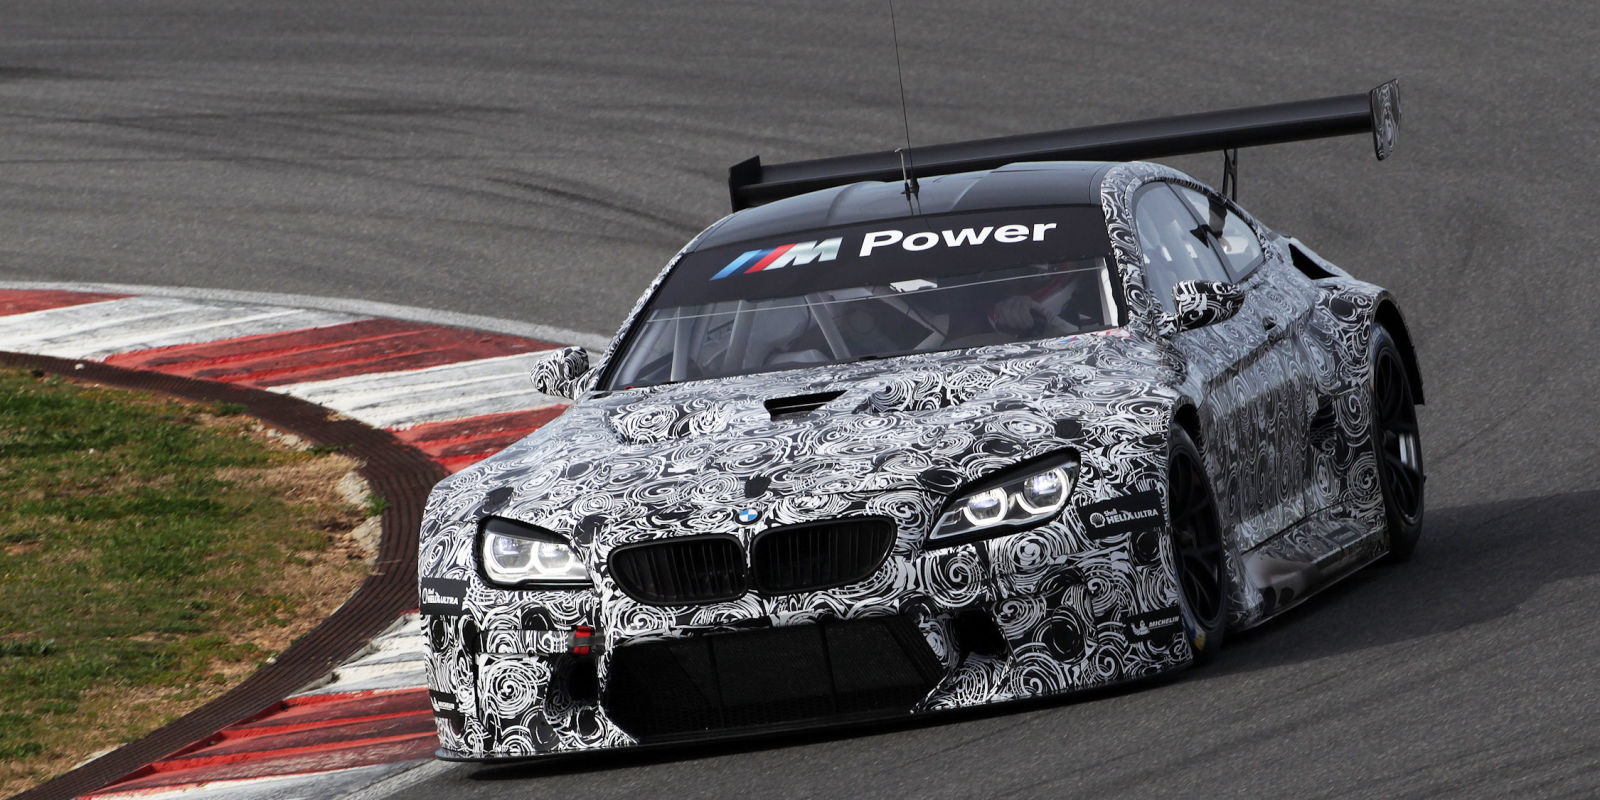 The Bmw M6 Gt3 Can Be Yours For 425 000